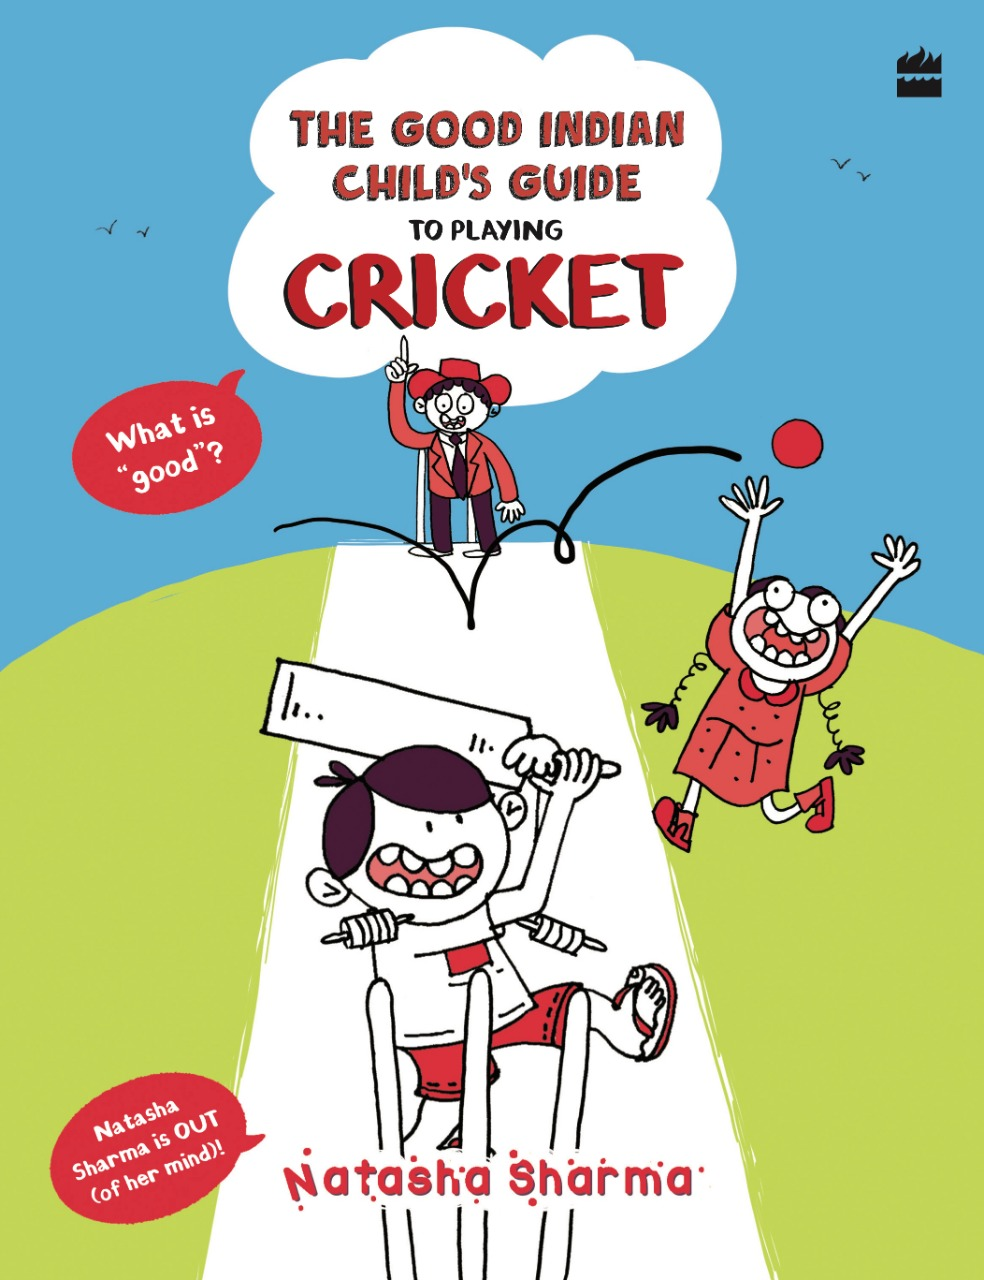 The Good Indian Child's Guide to Playing Cricket by Natasha Sharma